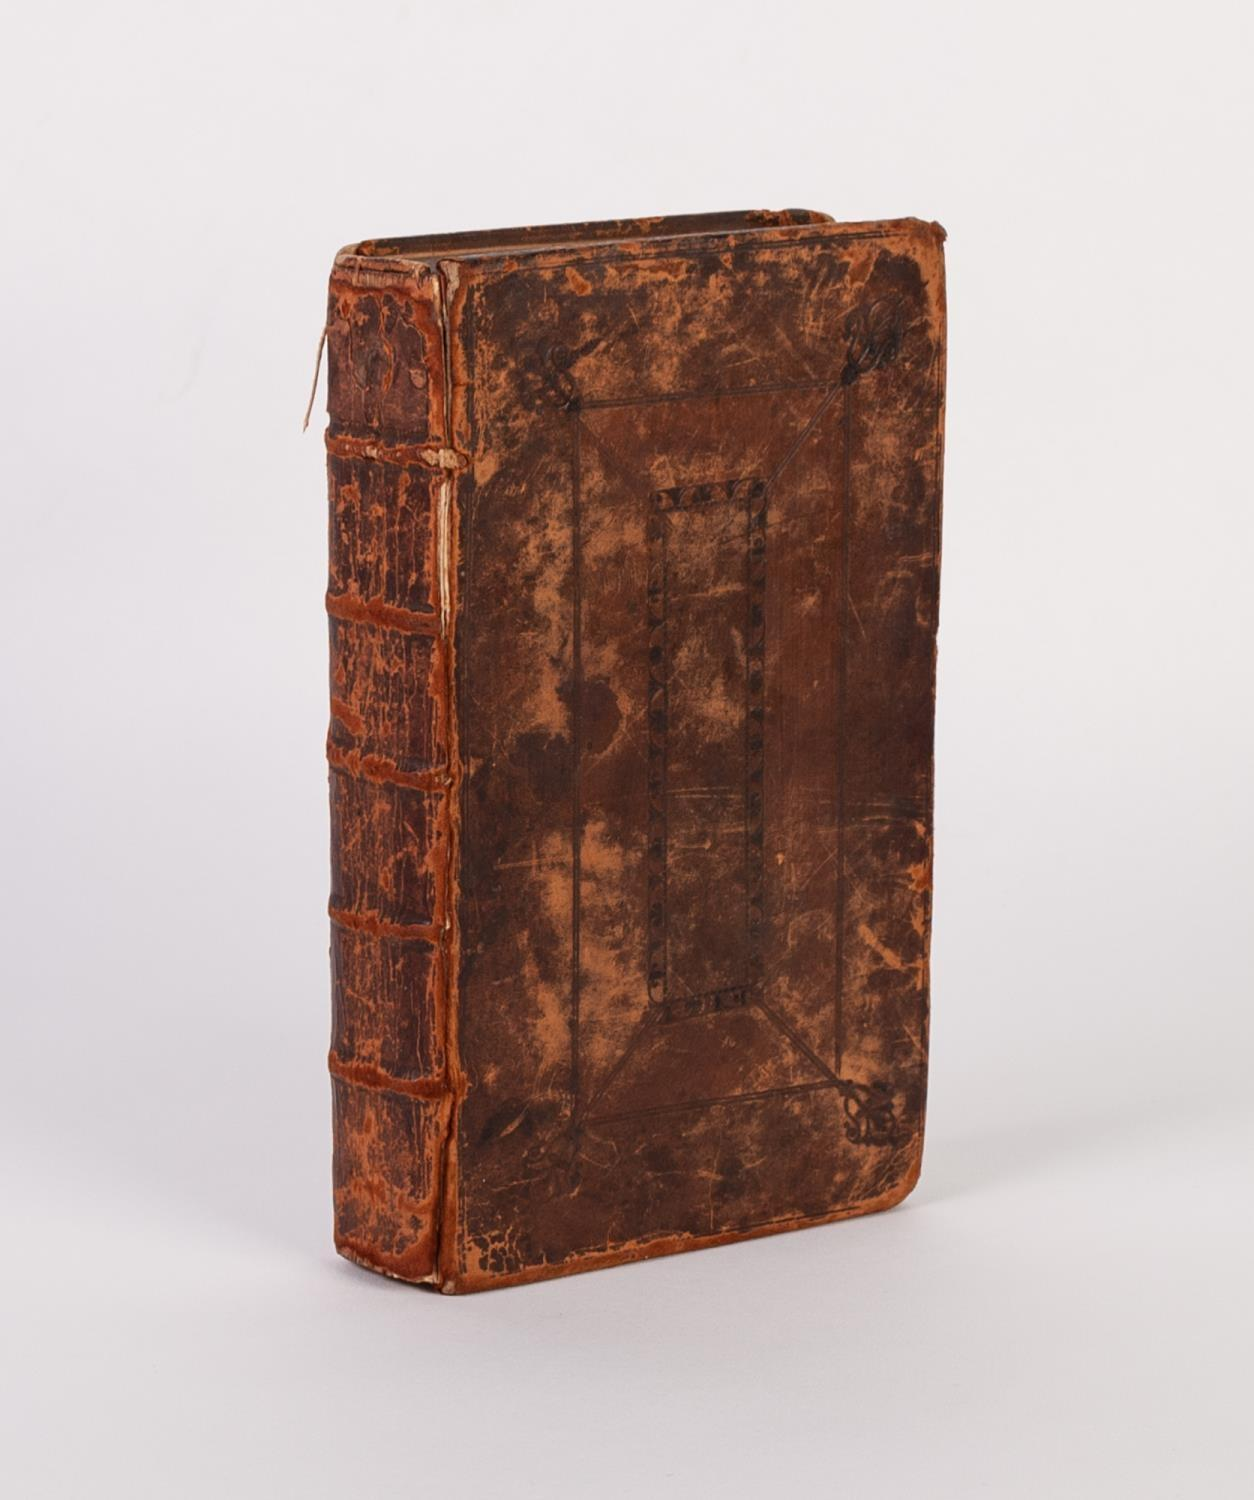 Lot 135 - THE LIFE OF JAMES II LATE KING OF ENGLAND, printed London for J Knapton 1705. Full leather binding